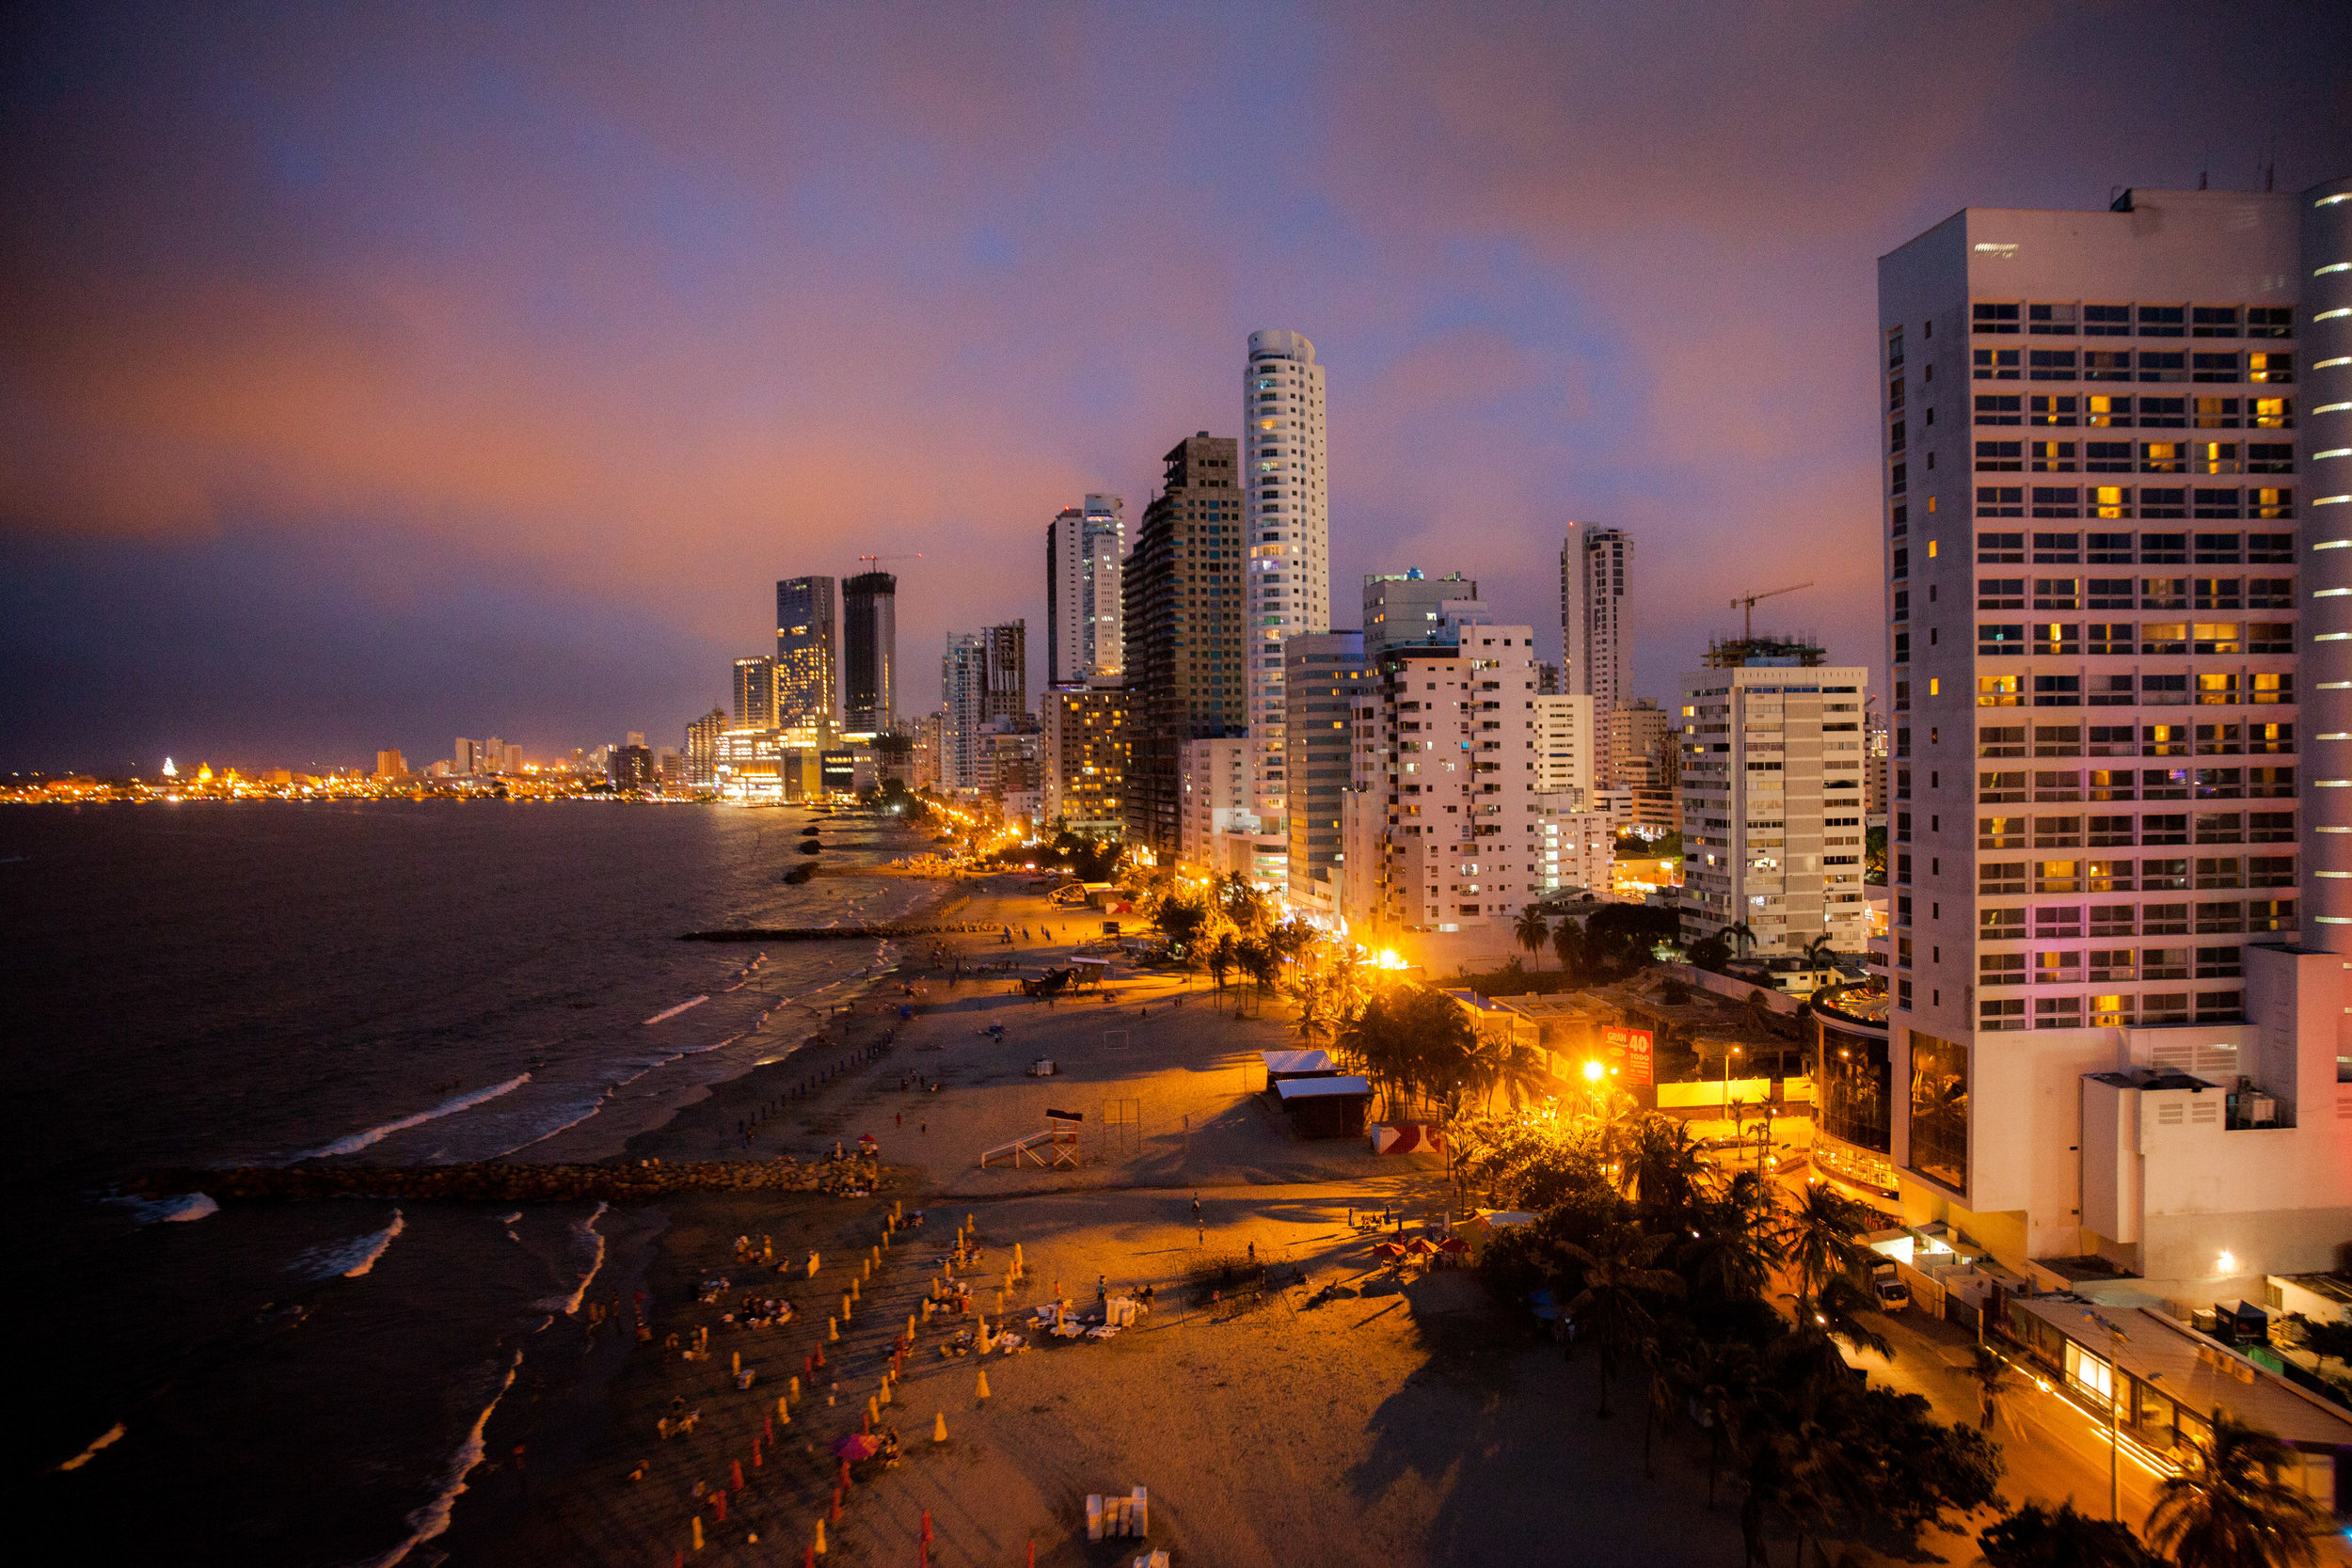 Tonight we will have a final celebratory dinner and then head out to explore Cartagena's nightlife